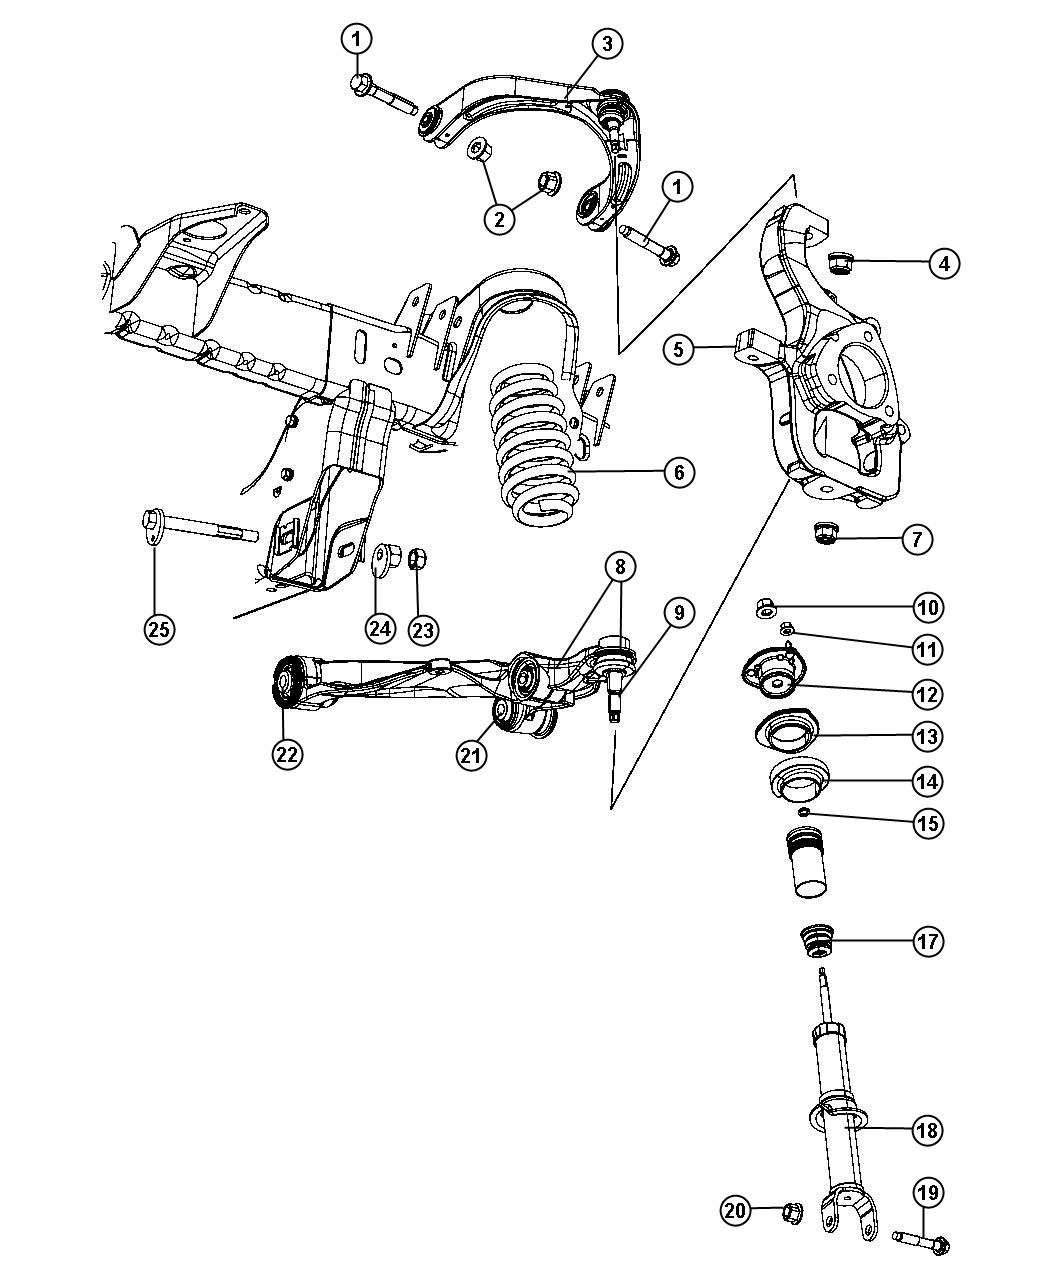 Dodge Dakota Front Suspension Parts Pictures To Pin On